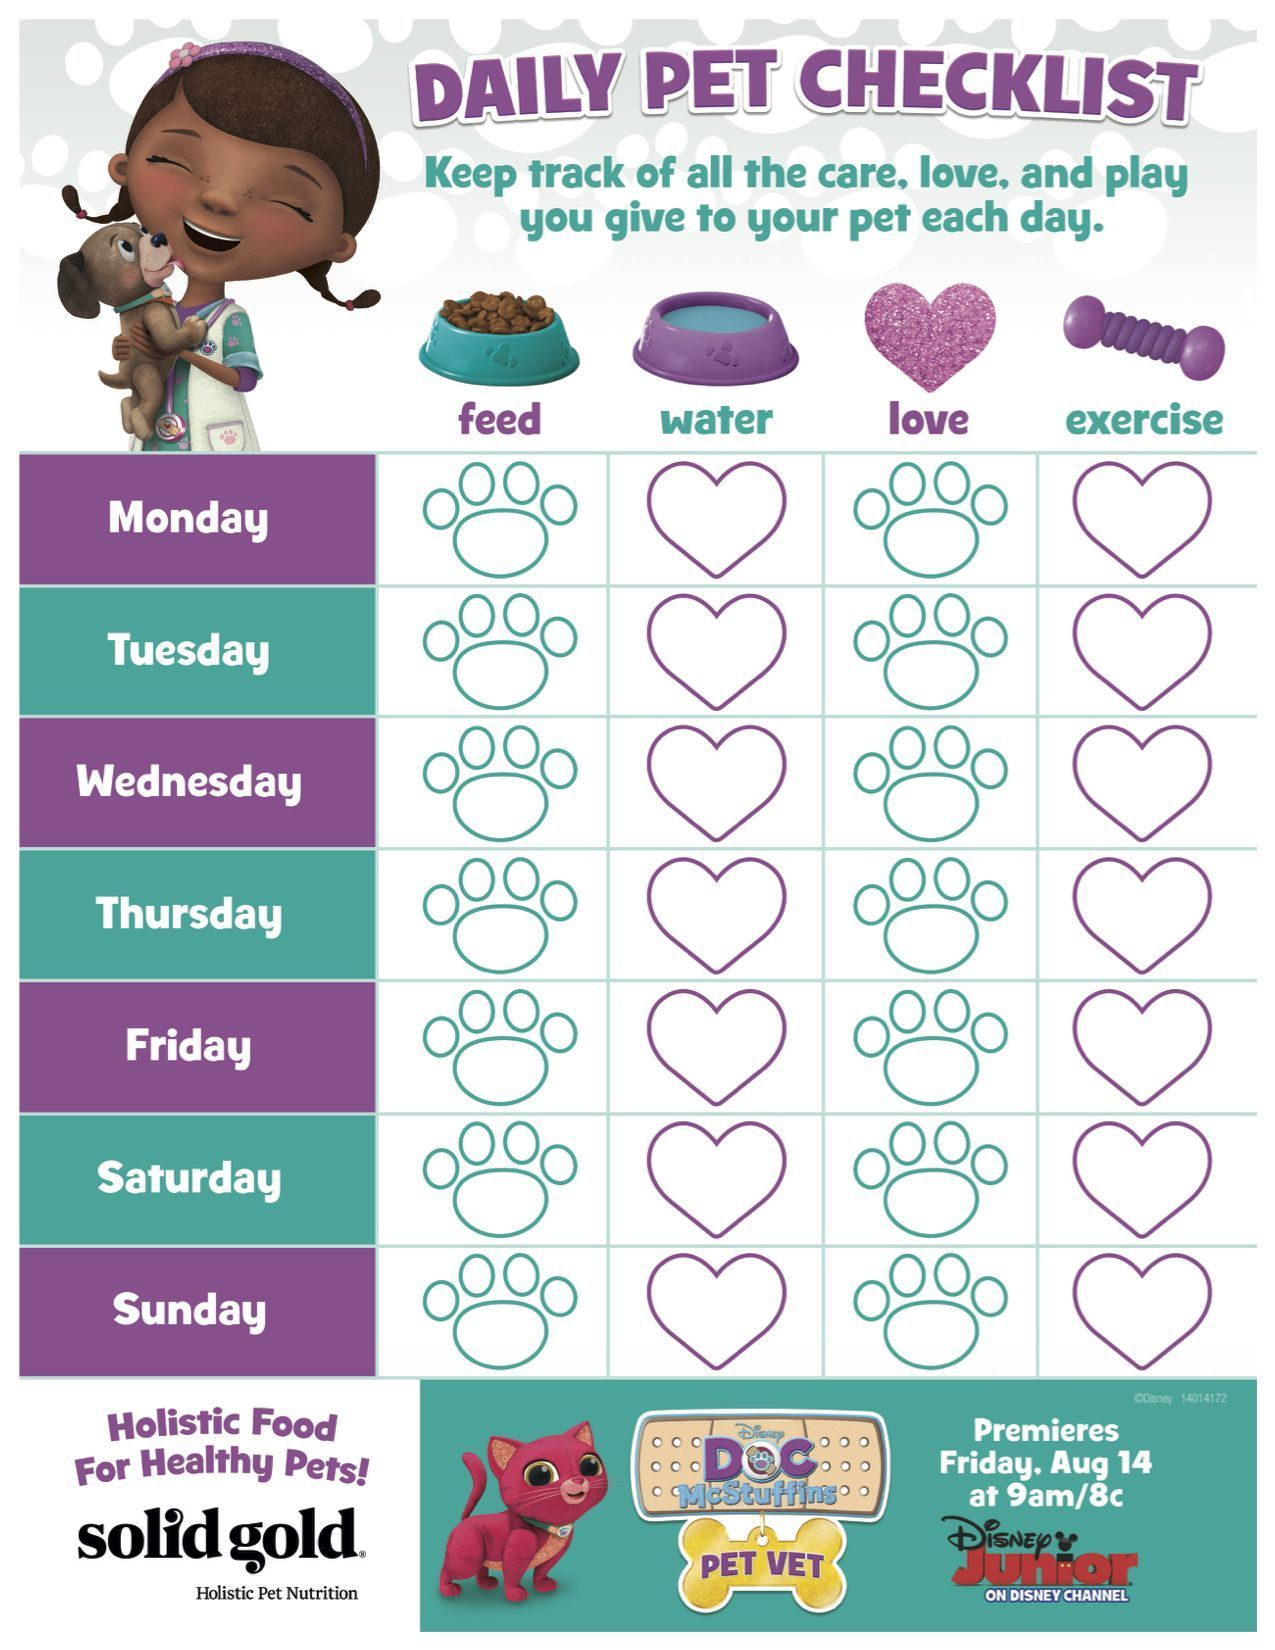 Taking Care Of A Pet Should Be Fun Not A List Of Chores Keep The Kids Motivated With This Daily Pet Checkli Doc Mcstuffins Pet Vet Pet Vet Dog Care Checklist